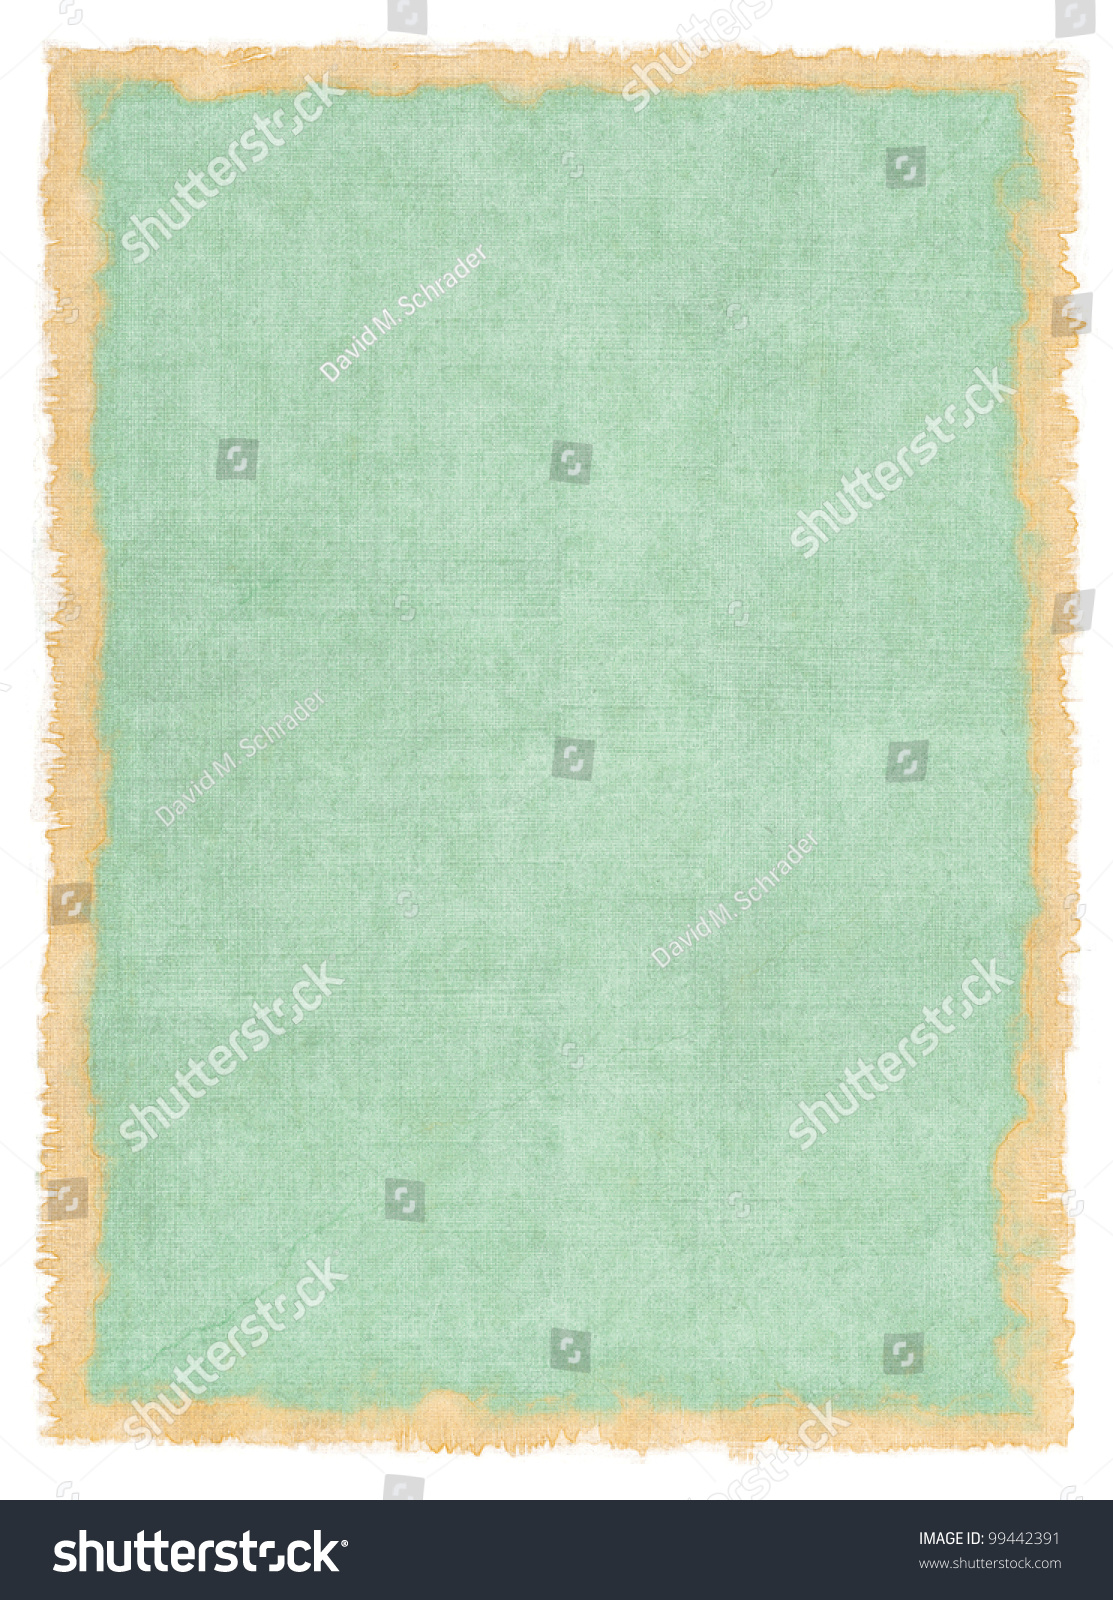 Book Cover Watercolor ~ An old cloth book cover with vintage colors and a stained